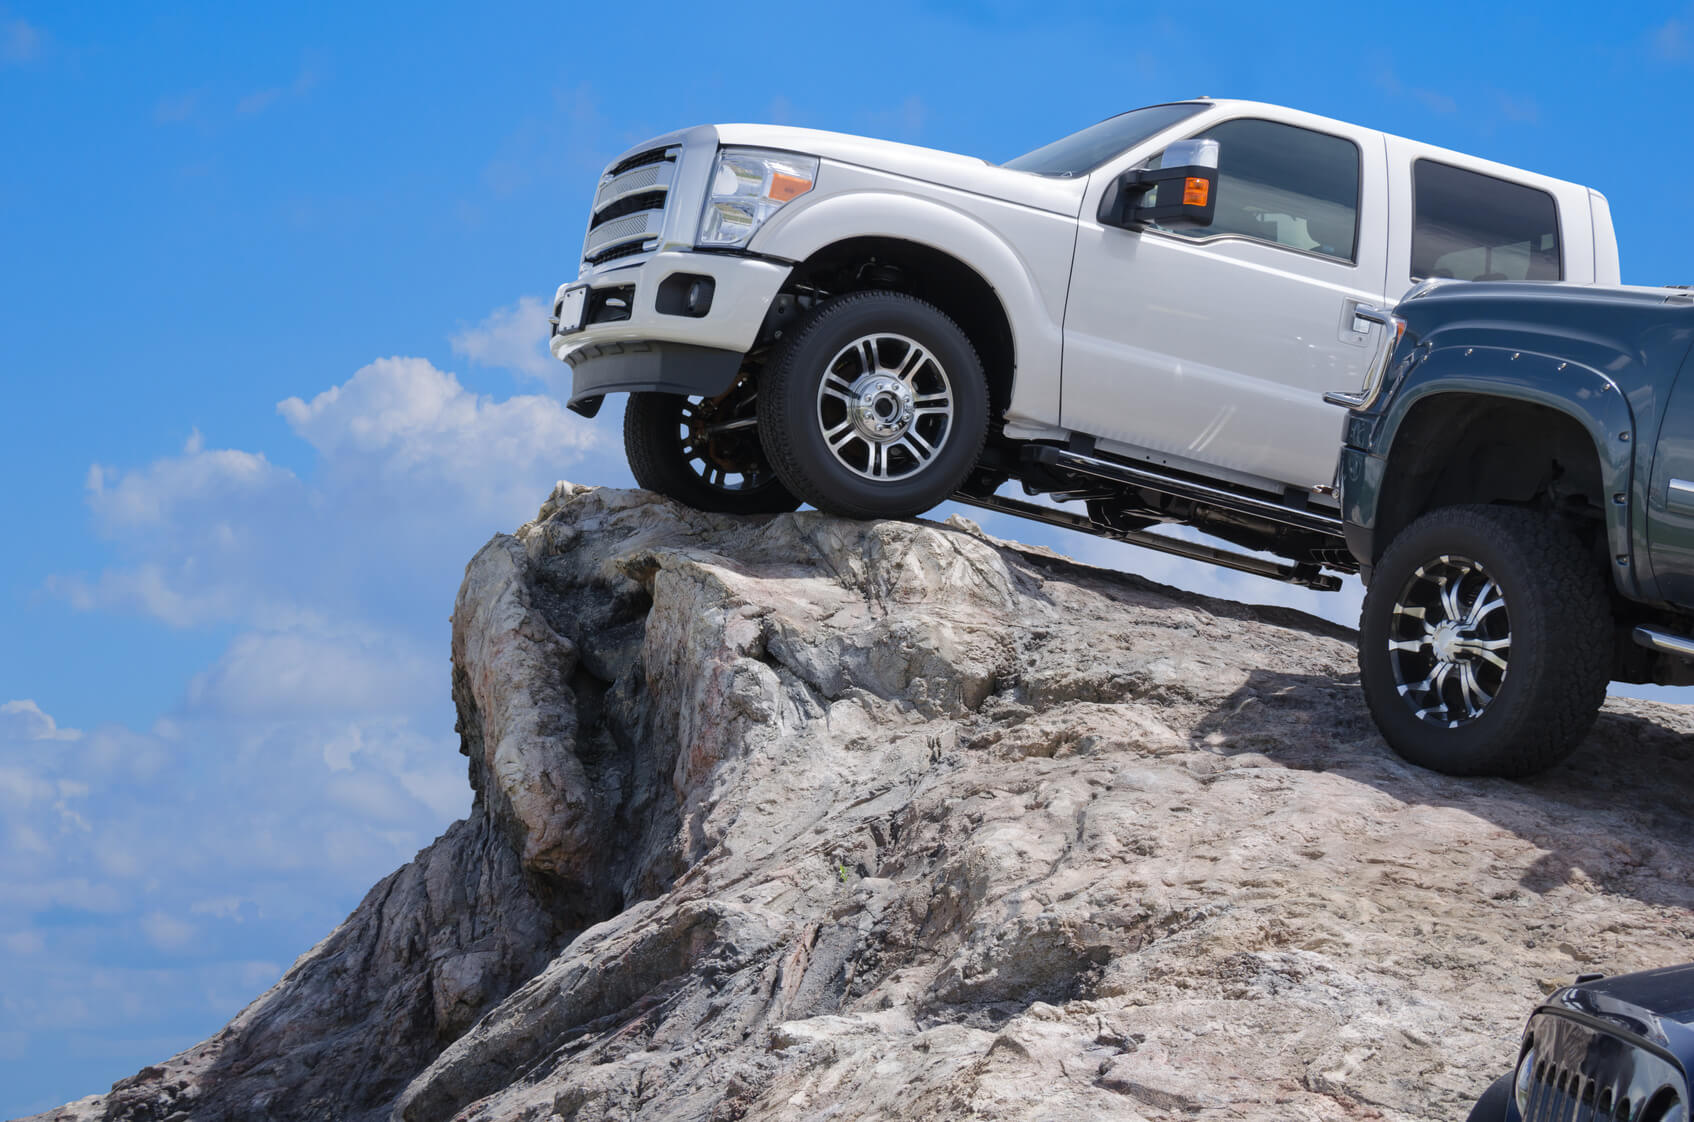 Big rugged trucks on the edge of a rocky cliff ledge